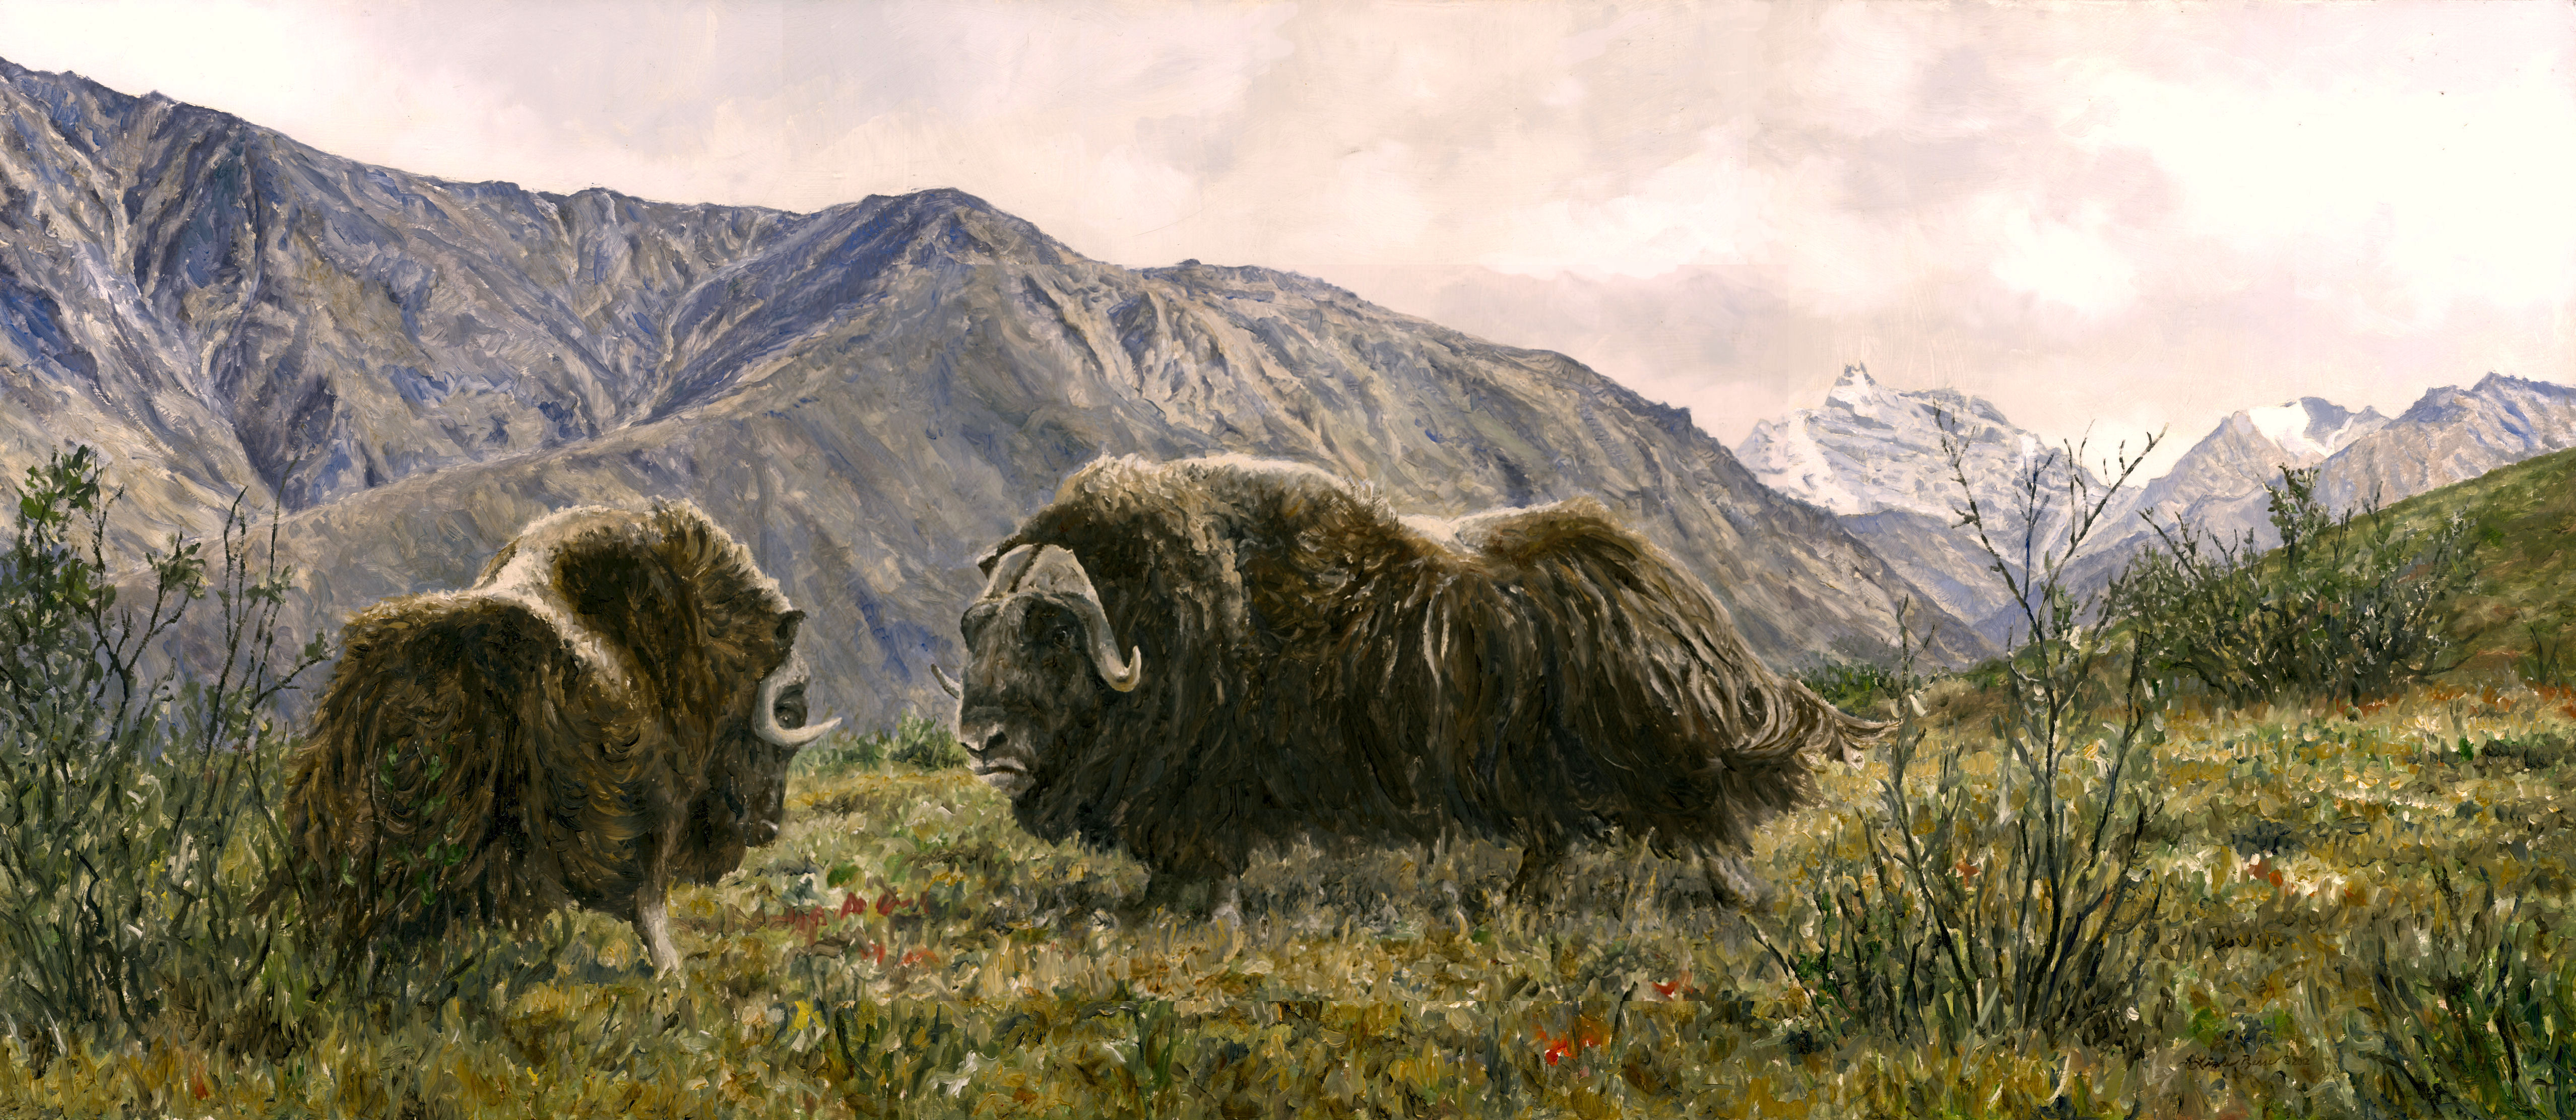 Titans of the Tundra-scan2 by Linda Besse